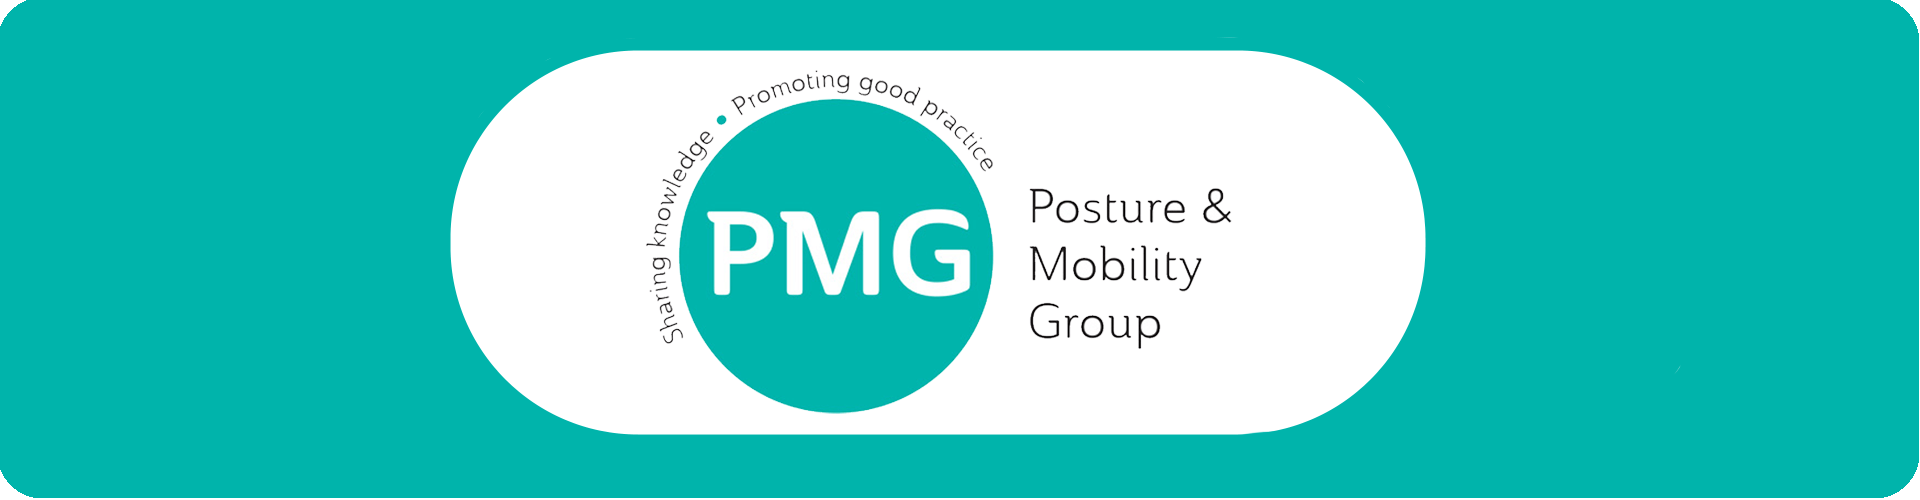 posture and mobility group logo